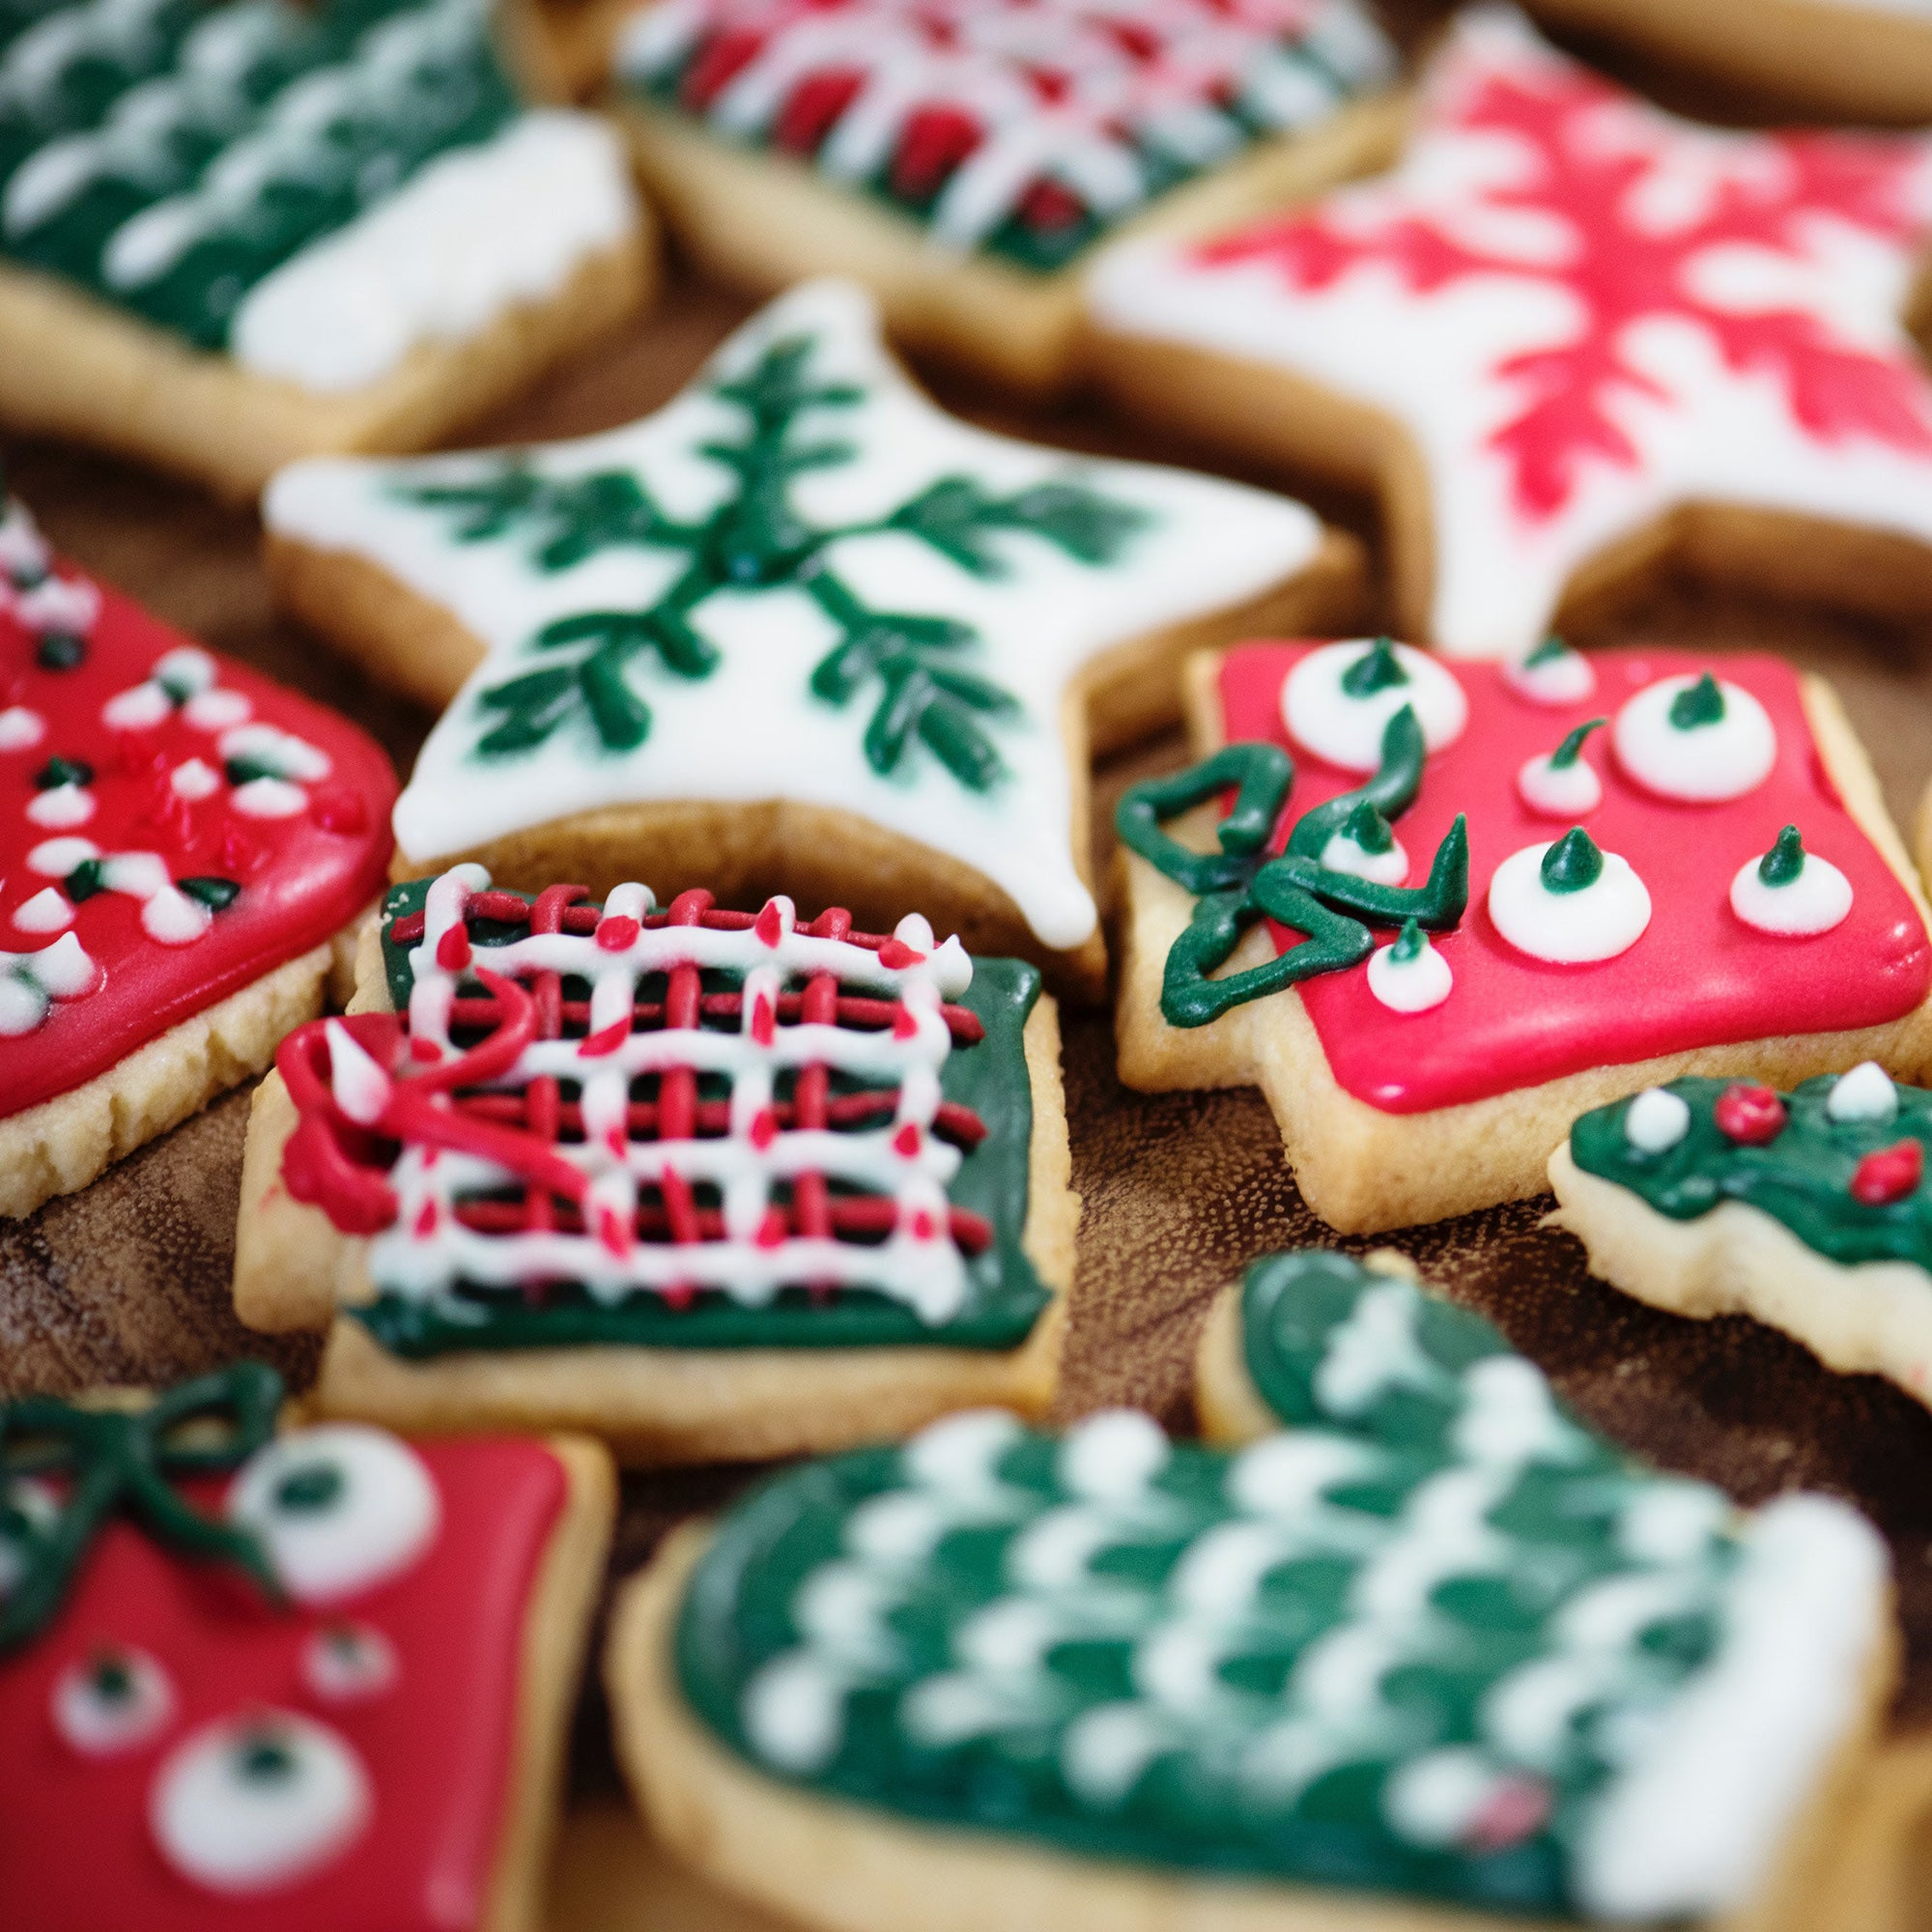 assortment of holiday decorated cookies